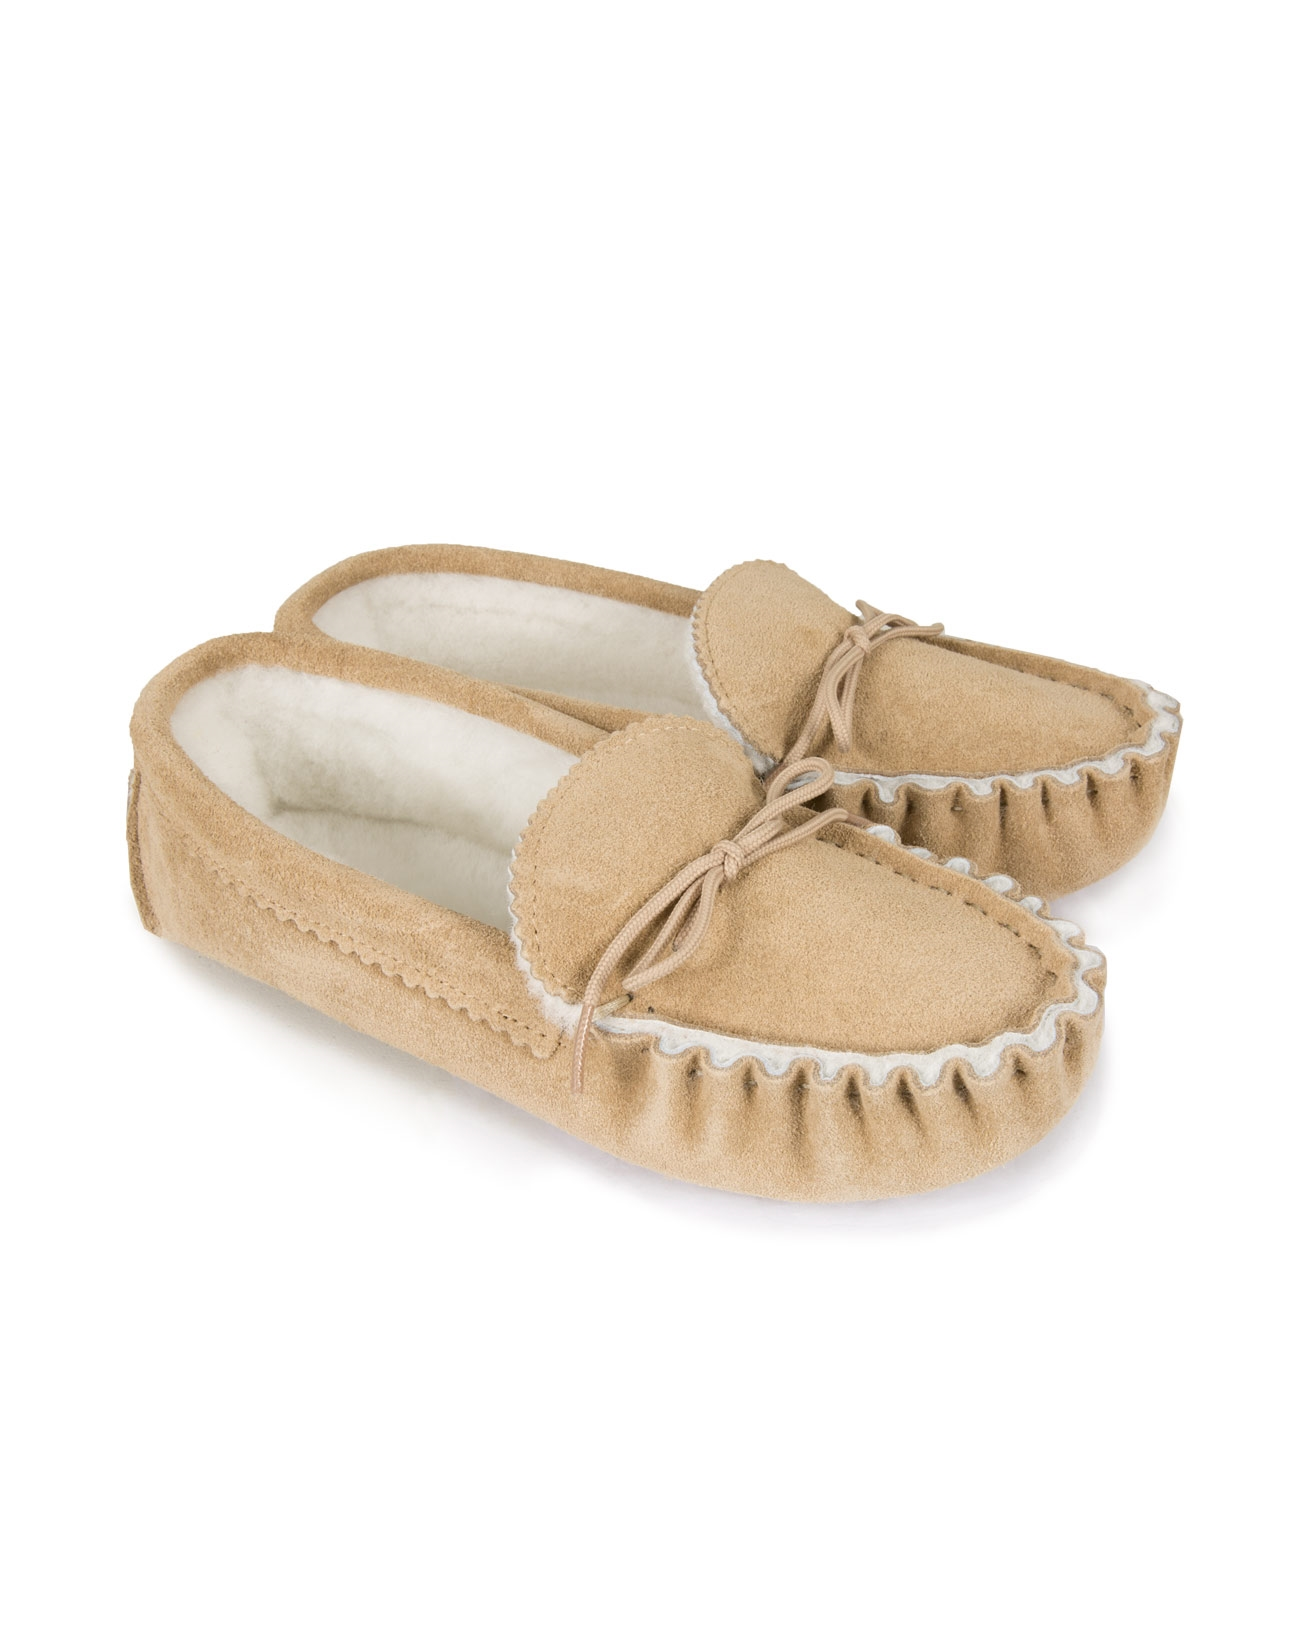 2150-loafer-soft sole-pair.jpg